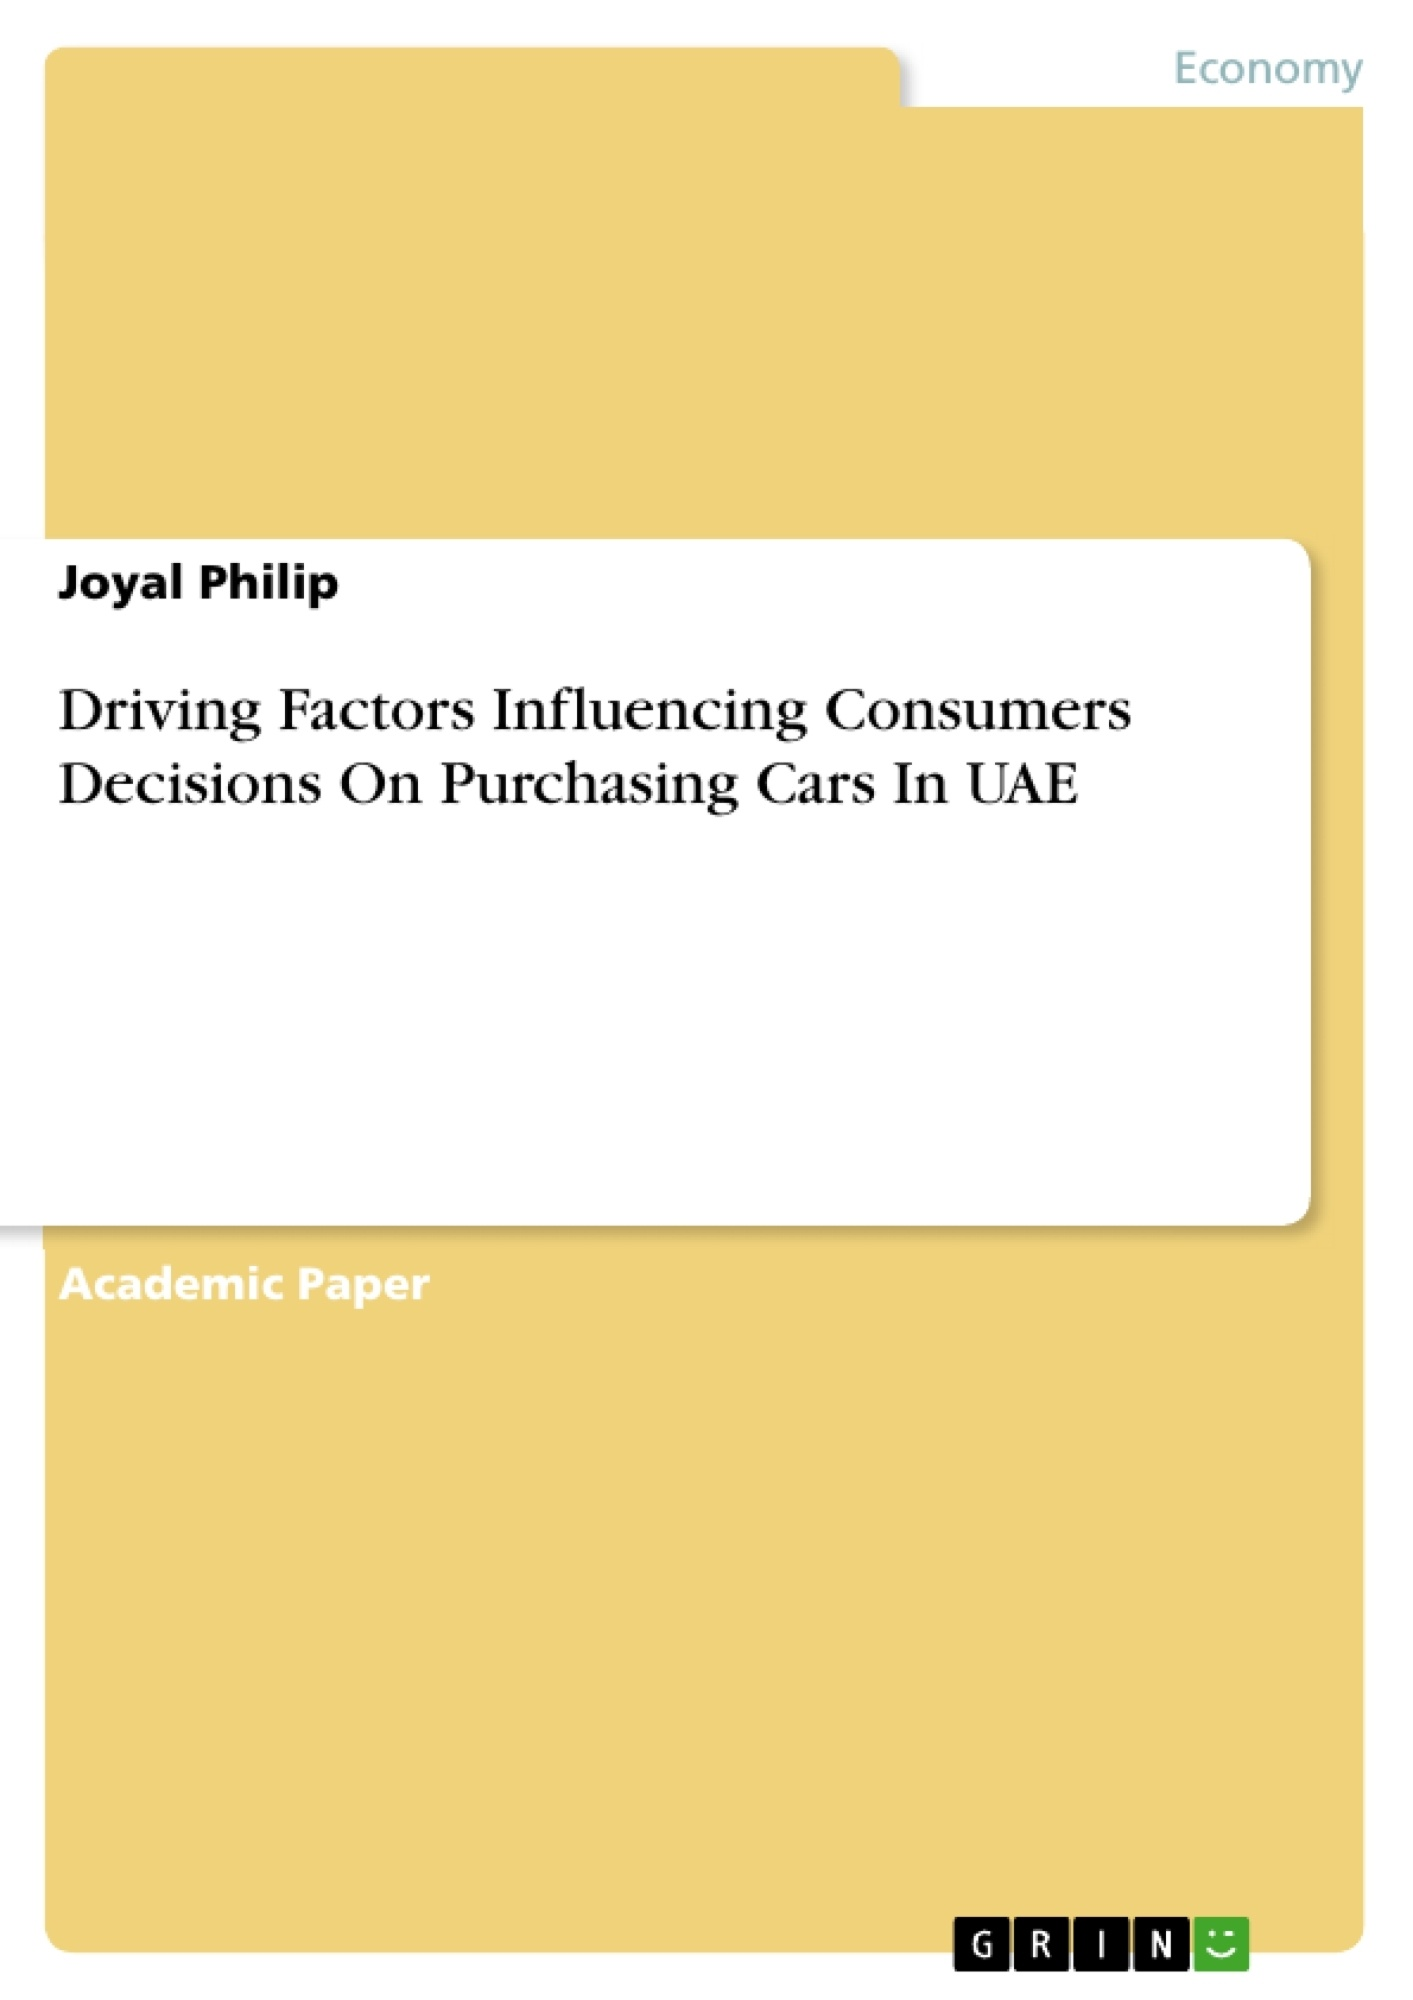 Title: Driving Factors Influencing Consumers Decisions On Purchasing Cars In UAE